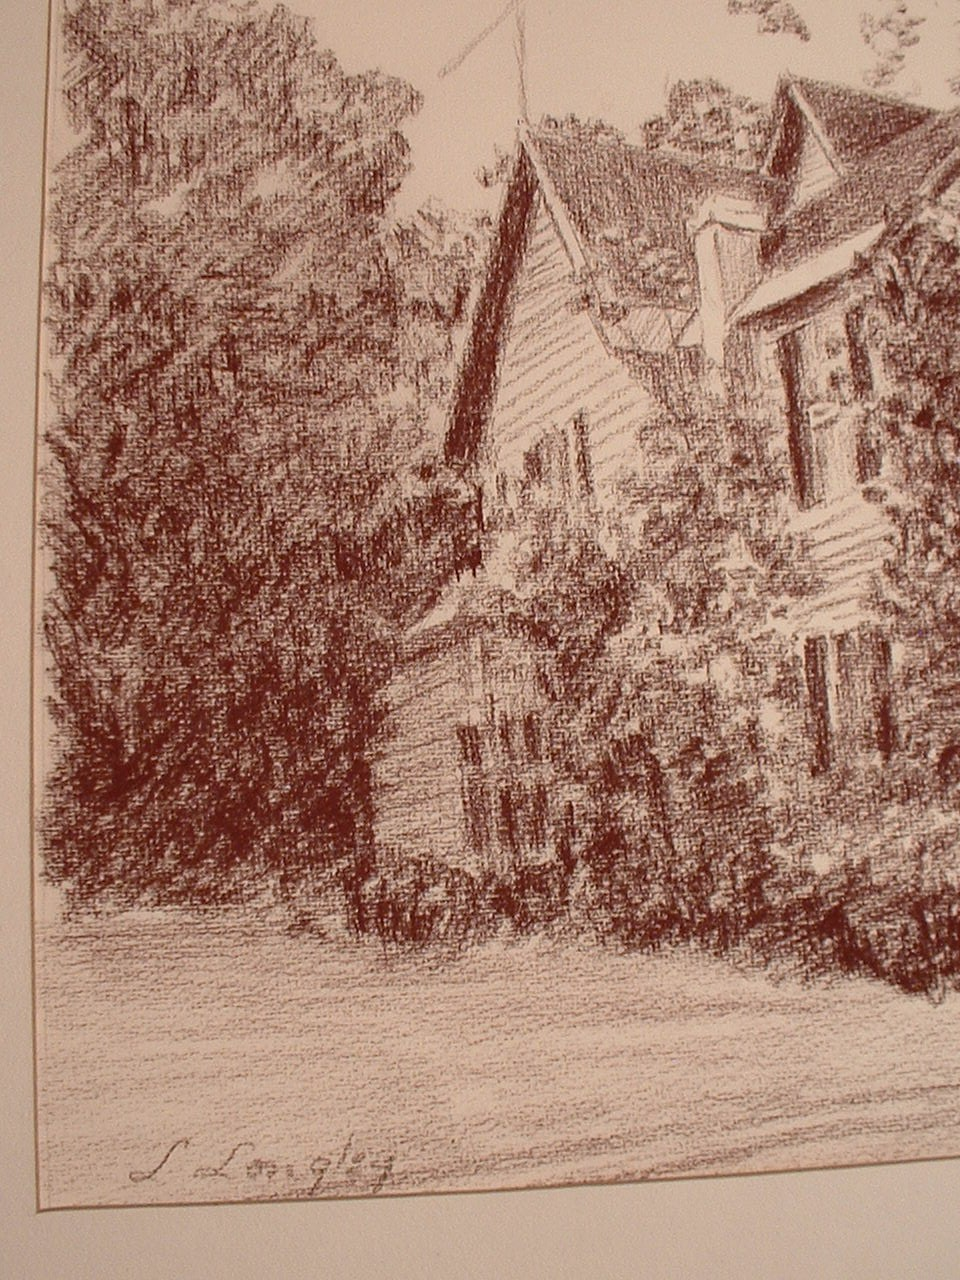 Vintage Charcoal Drawing  signed by Artist Longley